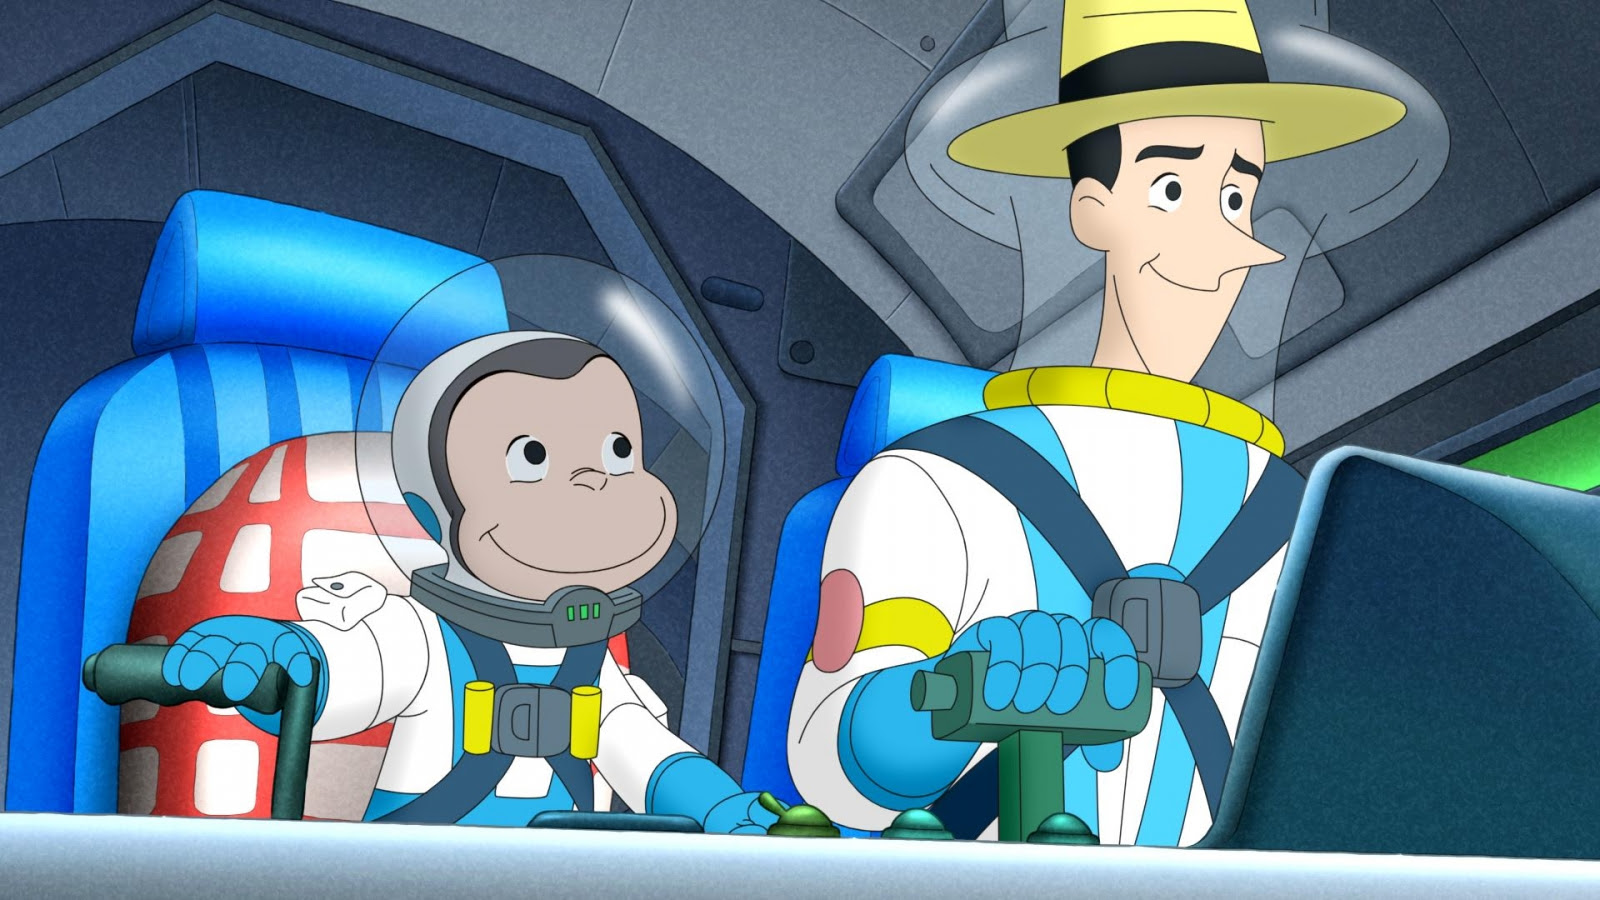 curious george goes to mars on may 19th - out with the kids